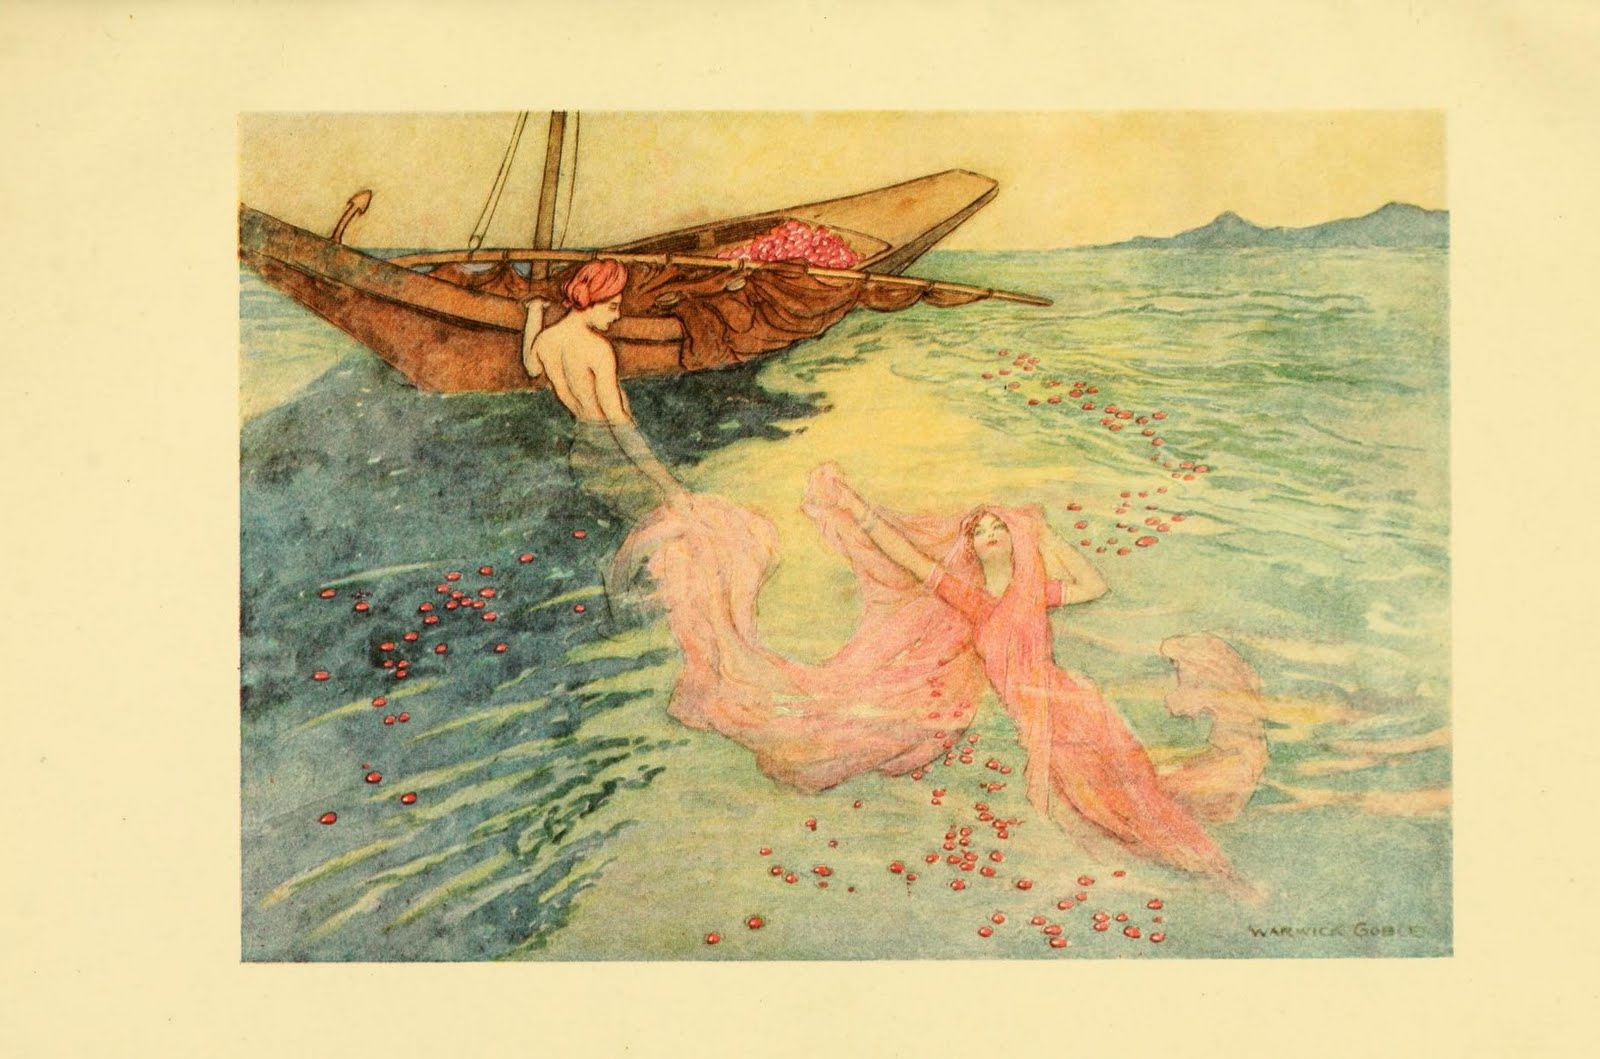 Illustration For Quot The Origin Of Rubies Quot By Warwick Goble